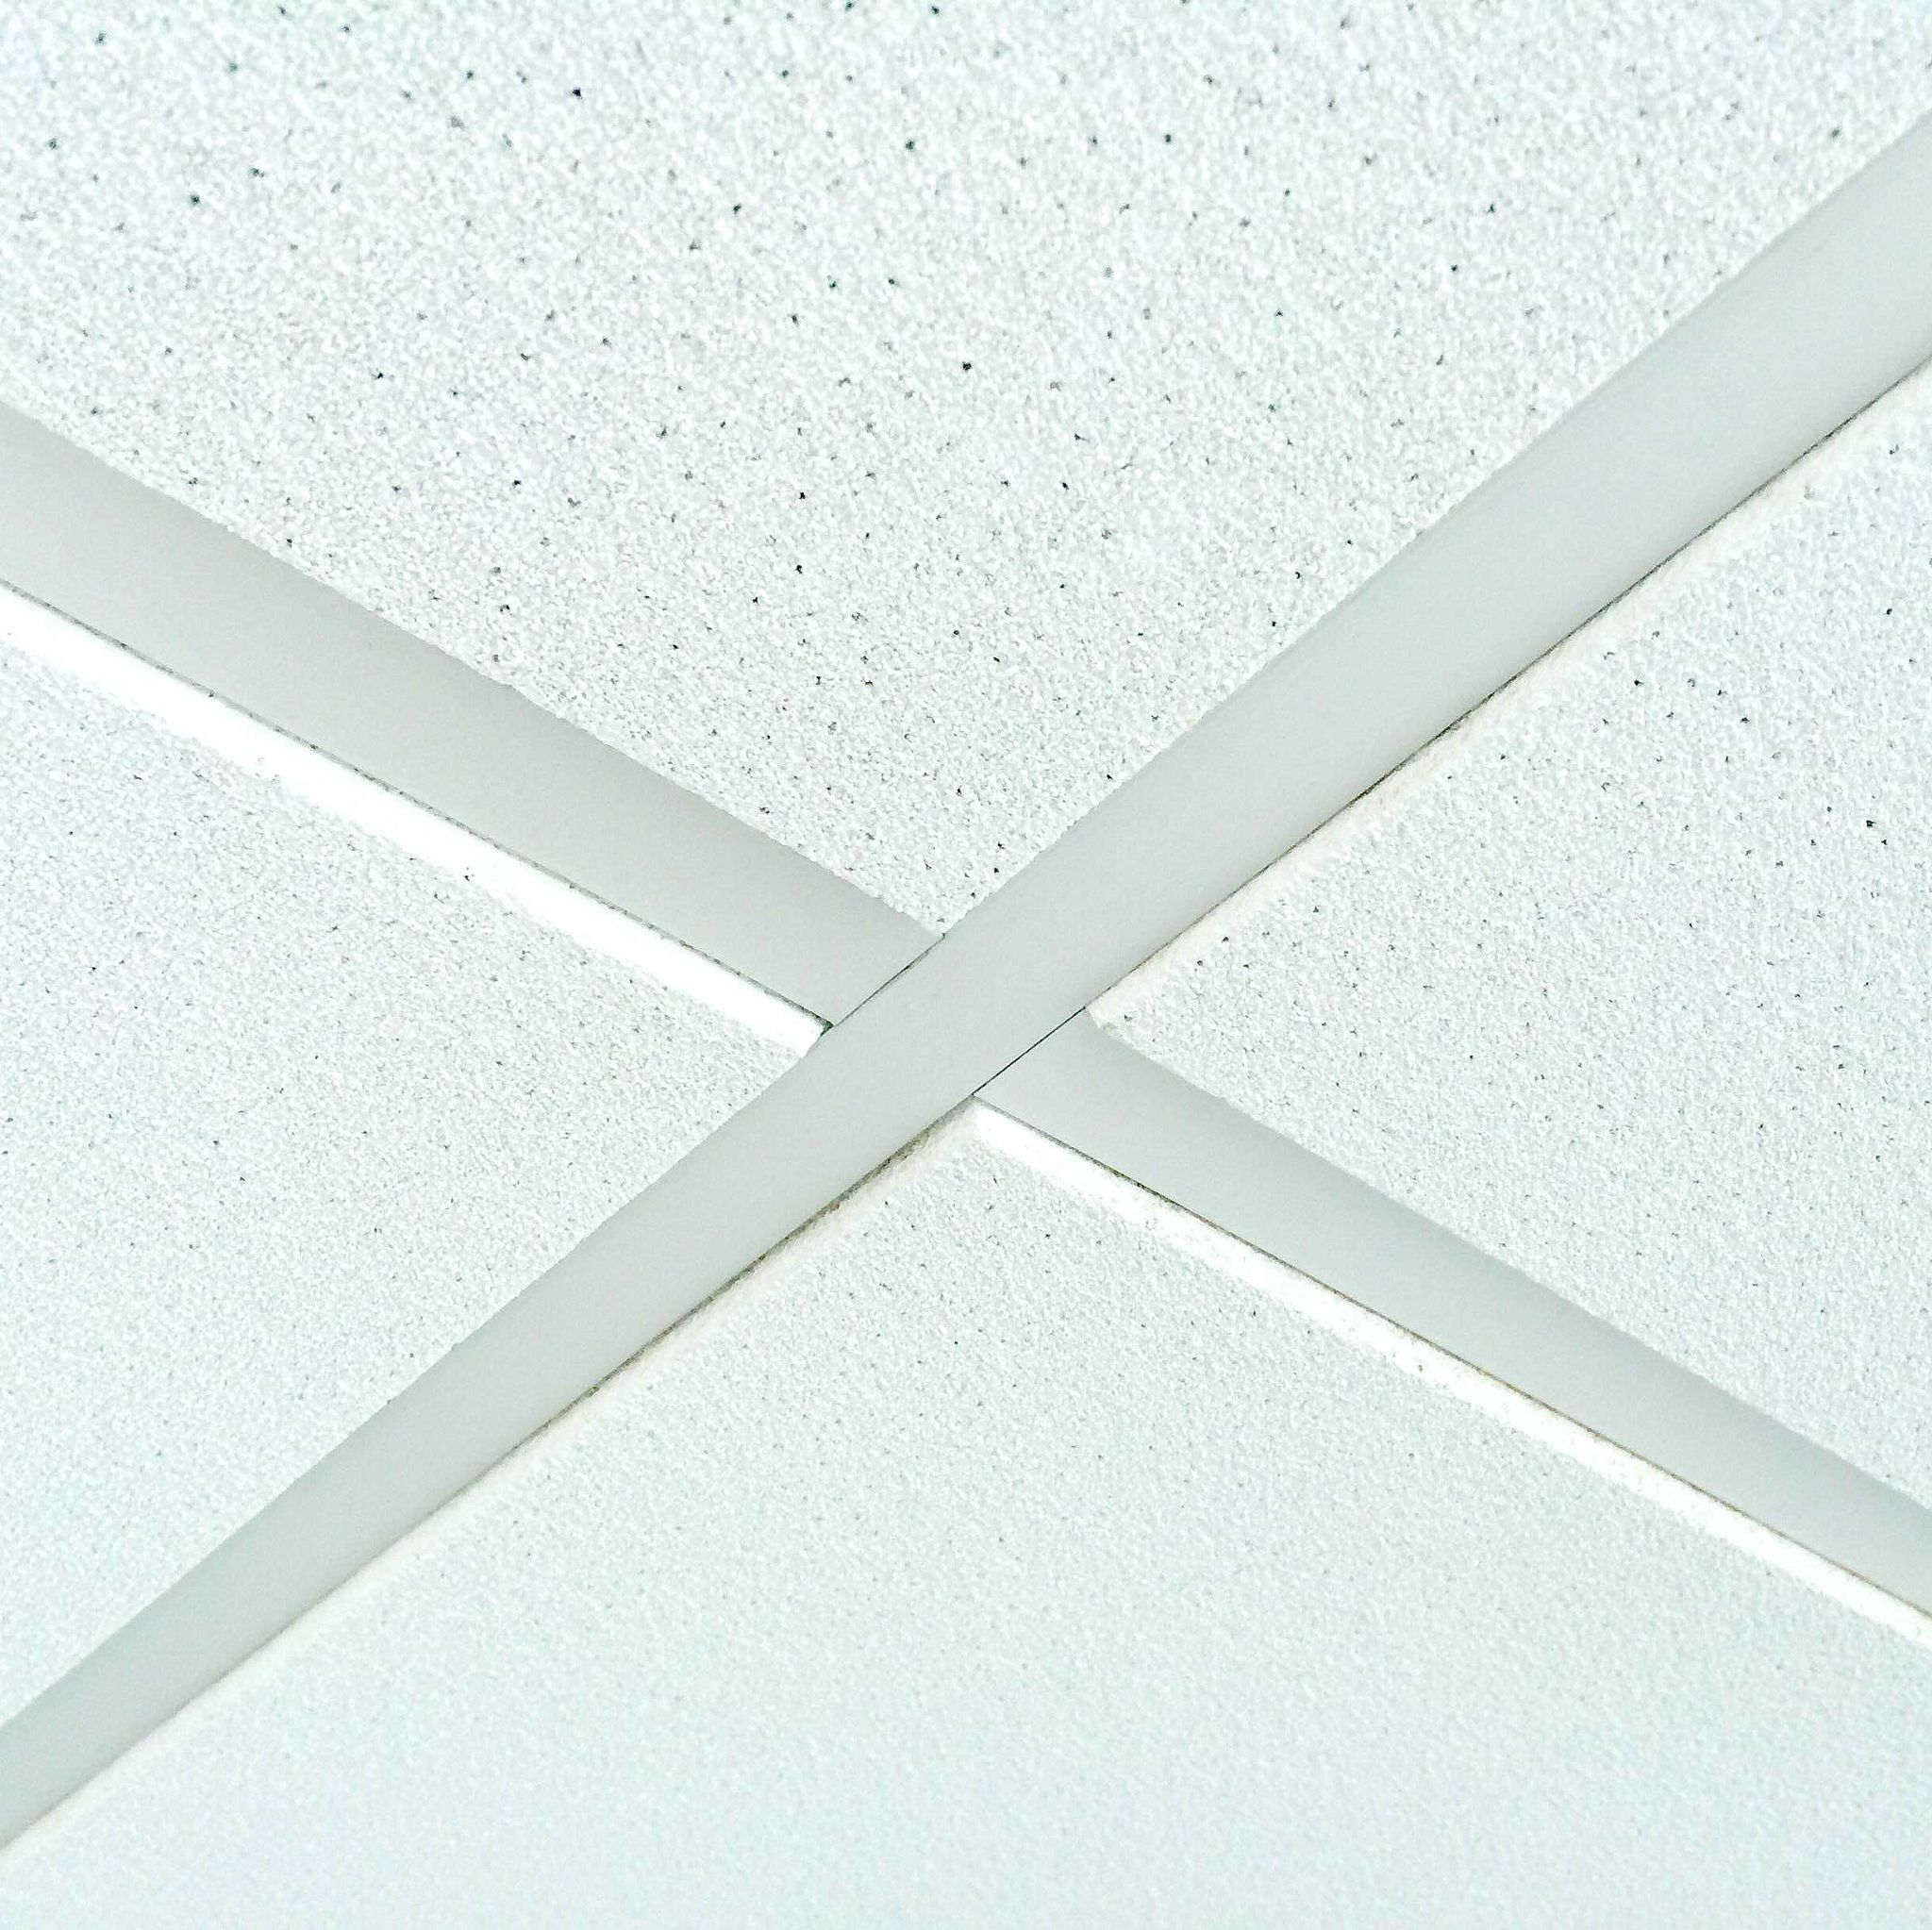 waterproof panels tiles resistant bathroom ceiling moisture ceilings drop armstrong